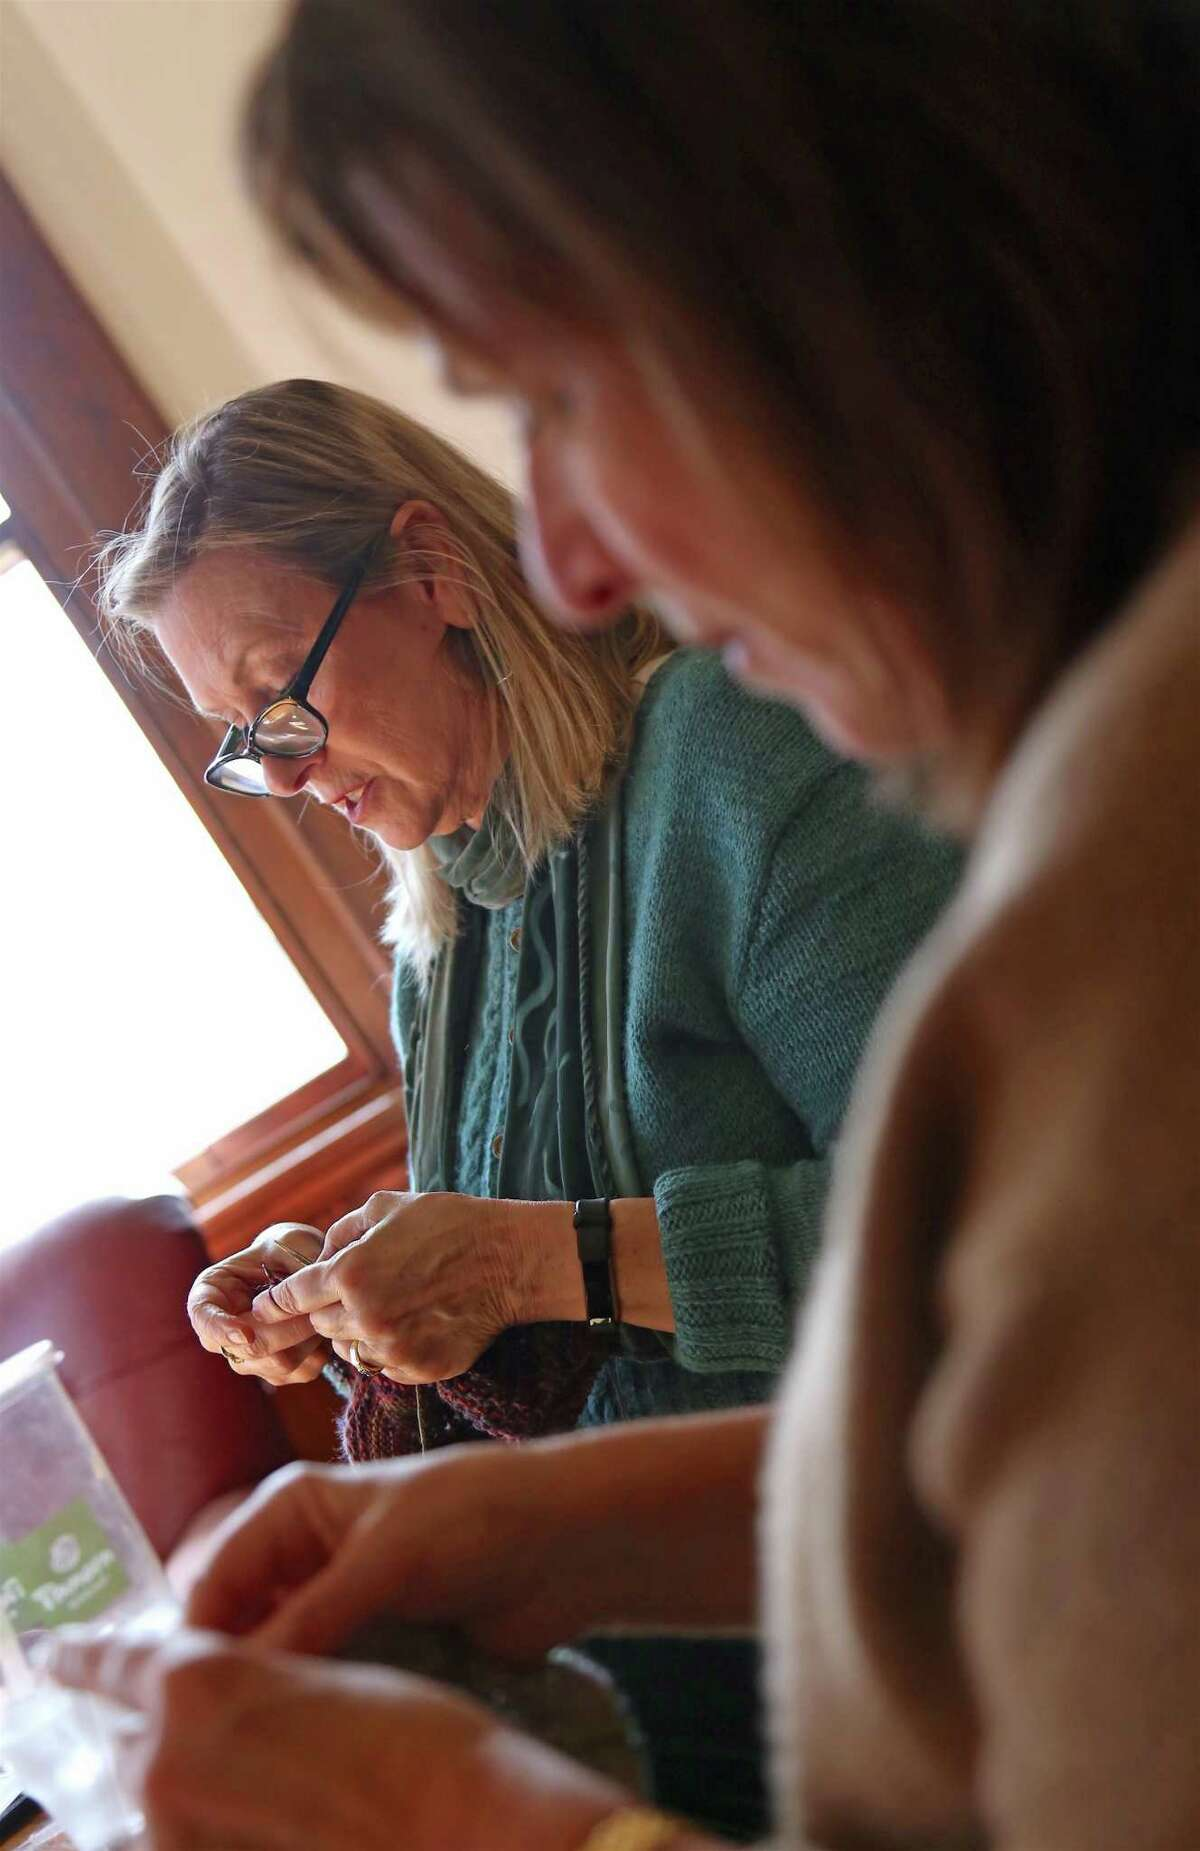 Barbara Bangser of Westport, left, and Lydia Kalt of Westport work on their craft at the weekly session of the Pequot Purls at Pequot Library on Thursday, Jan. 16, 2020, in Fairfield, Conn.